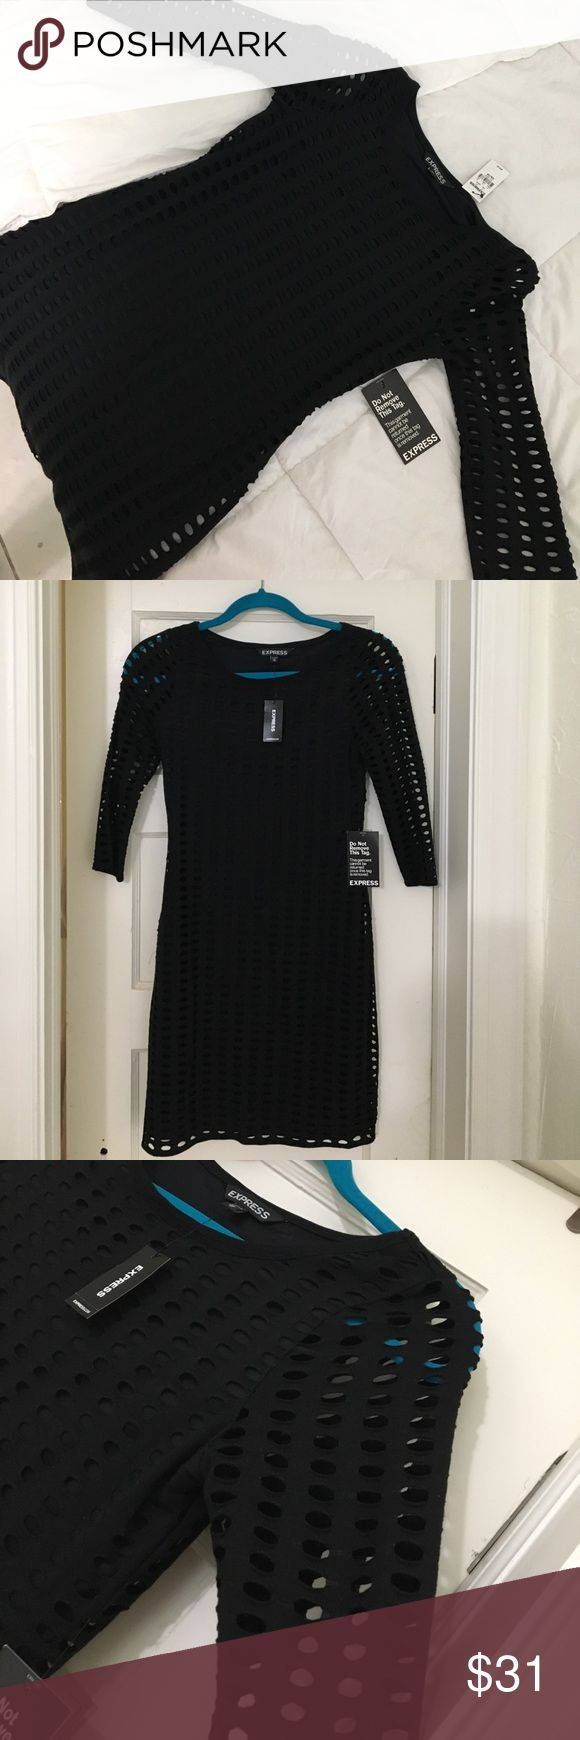 Express XS cocktail dress Beautiful, never worn, black knee length crochet cocktail dress. Tags are still on the dress. Size XS Express Dresses Long Sleeve